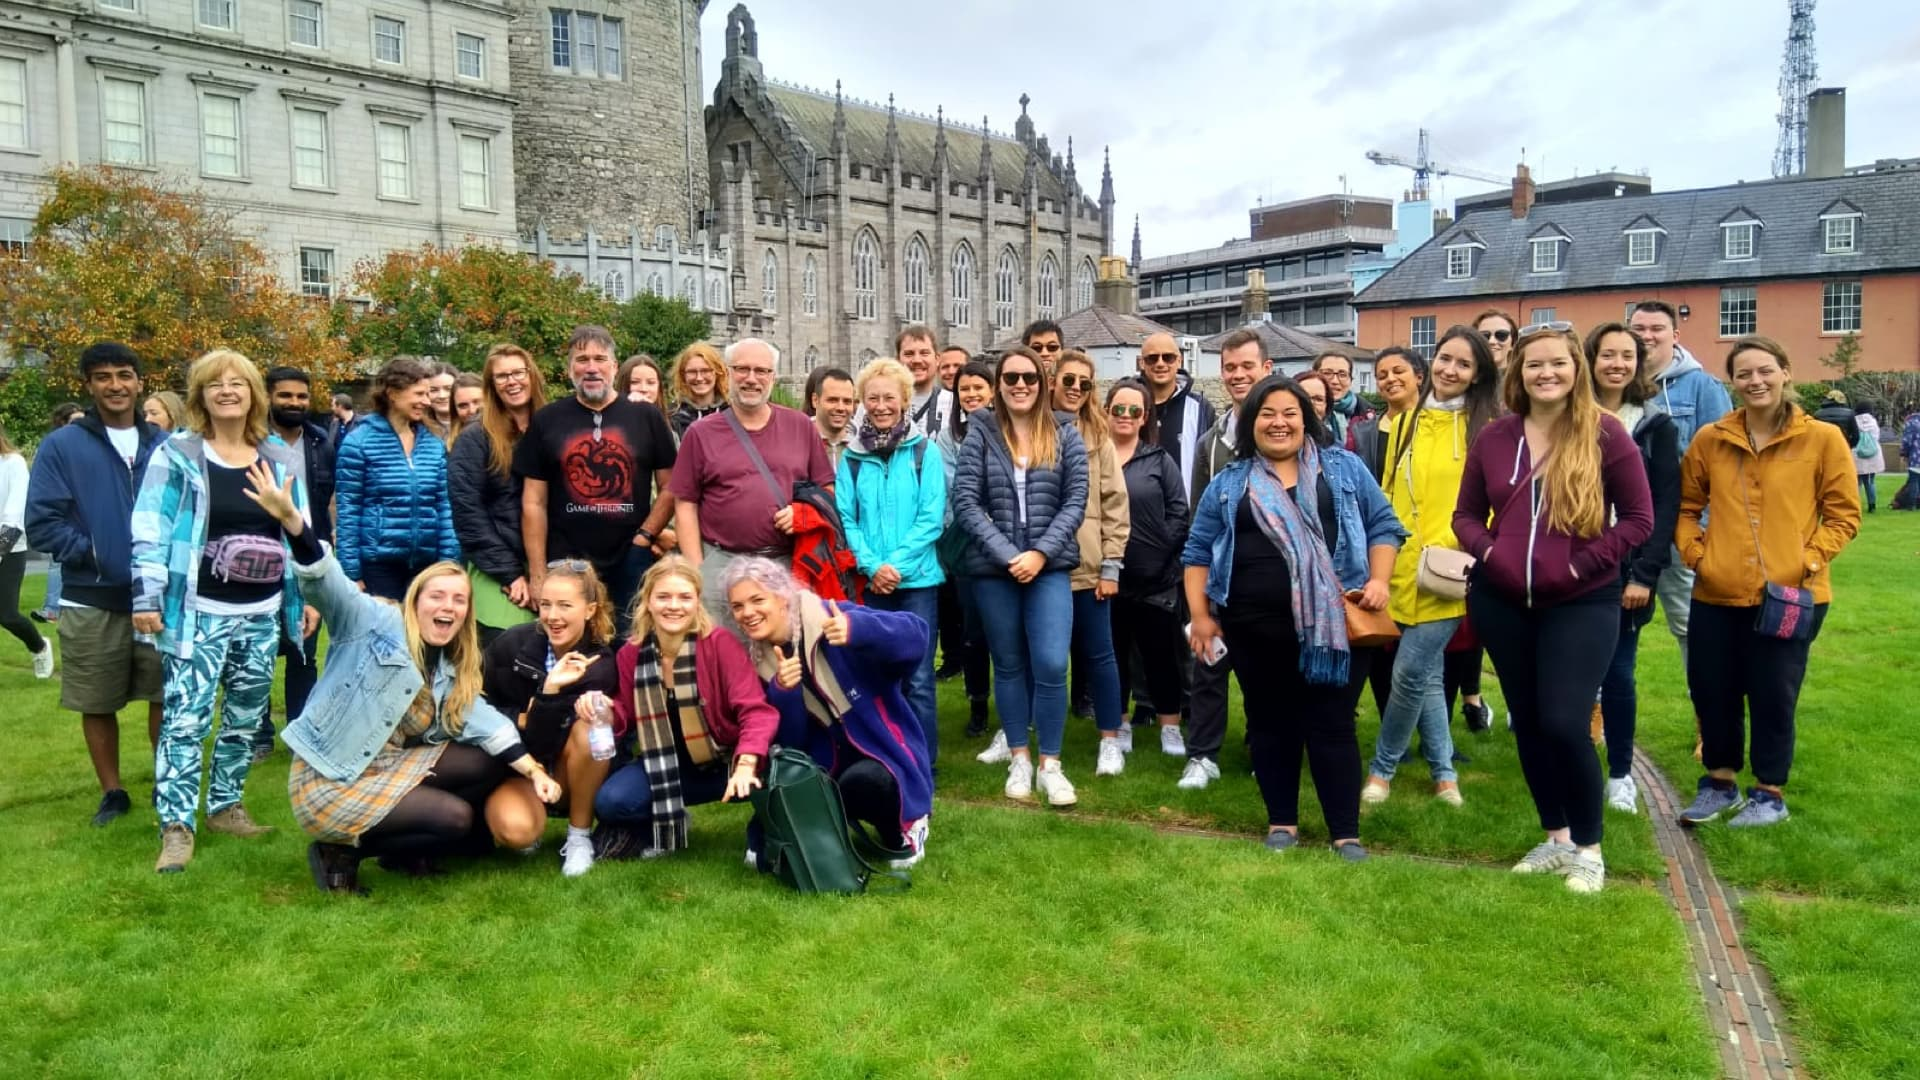 Guide is showing authentic Dublin